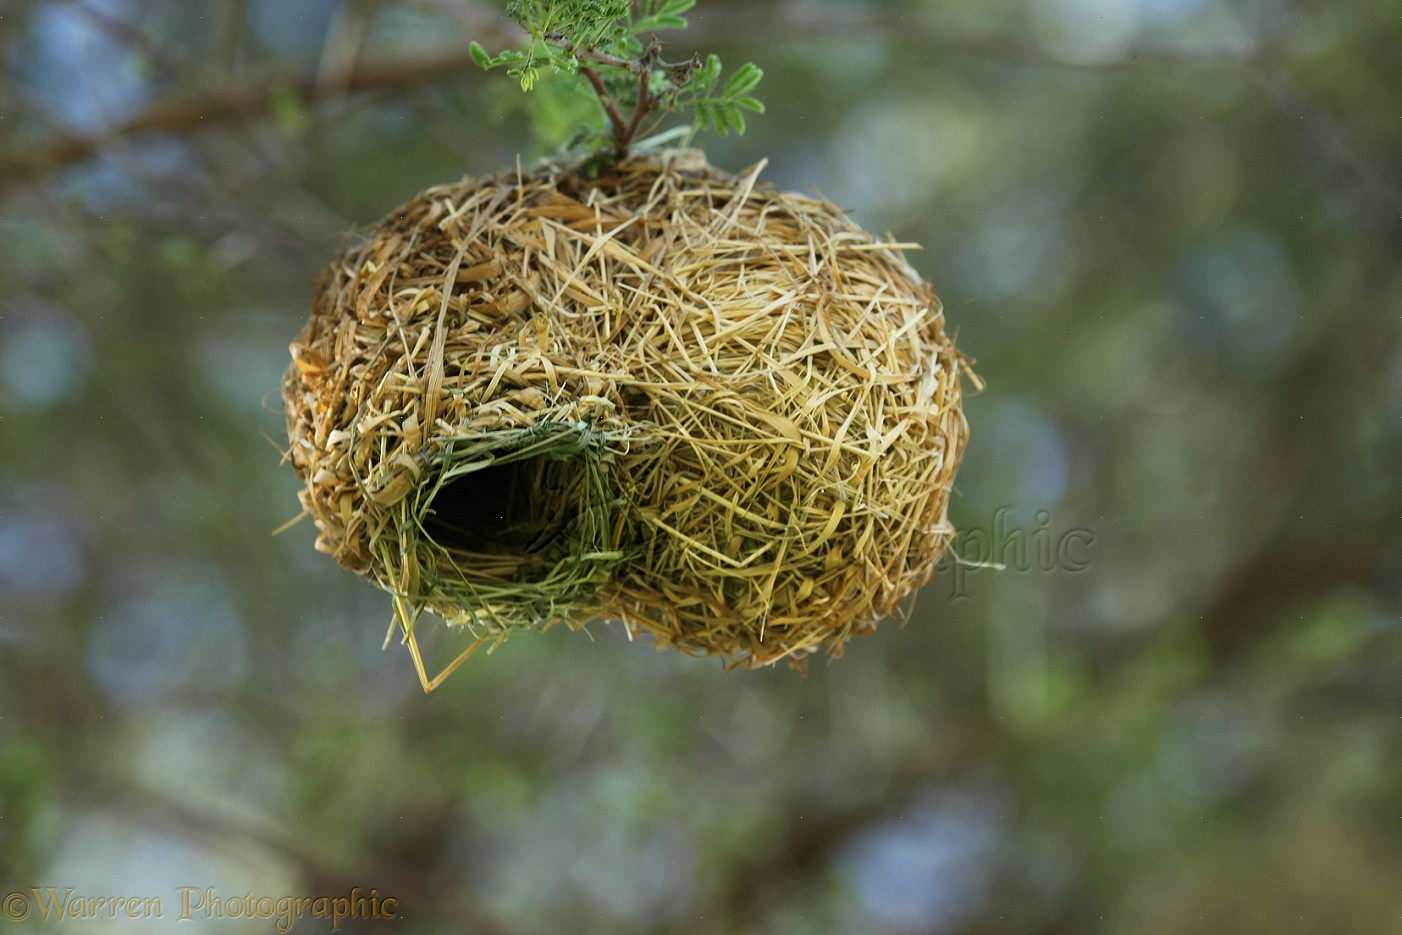 Weaver bird nest pictures - photo#24